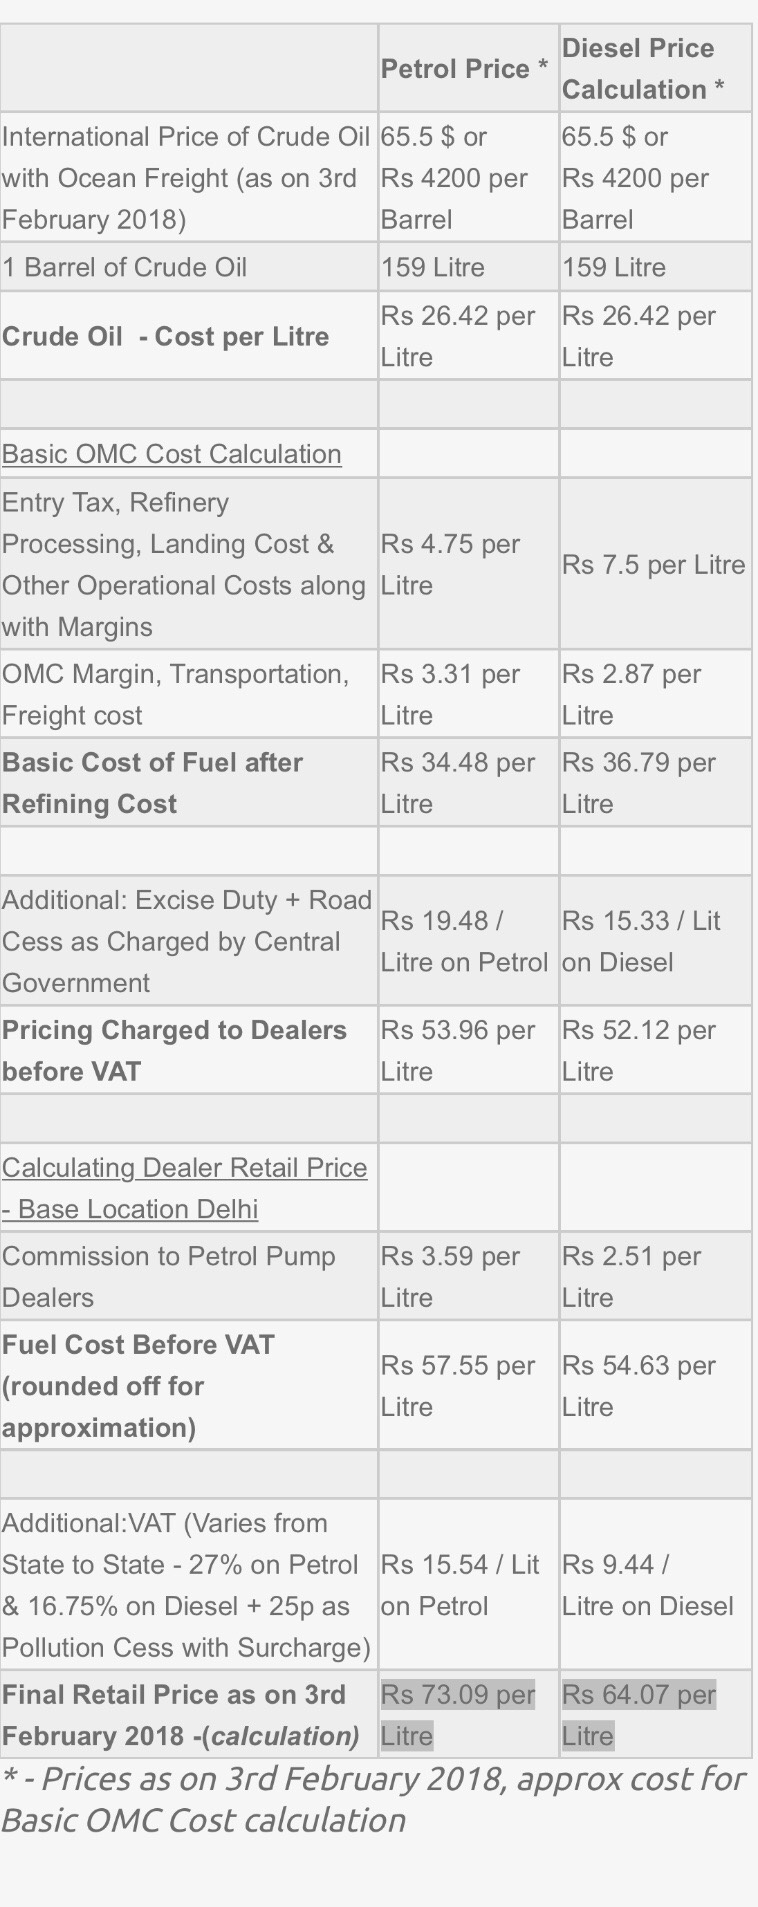 How to calculate petrol and diesel prices from a crude oil